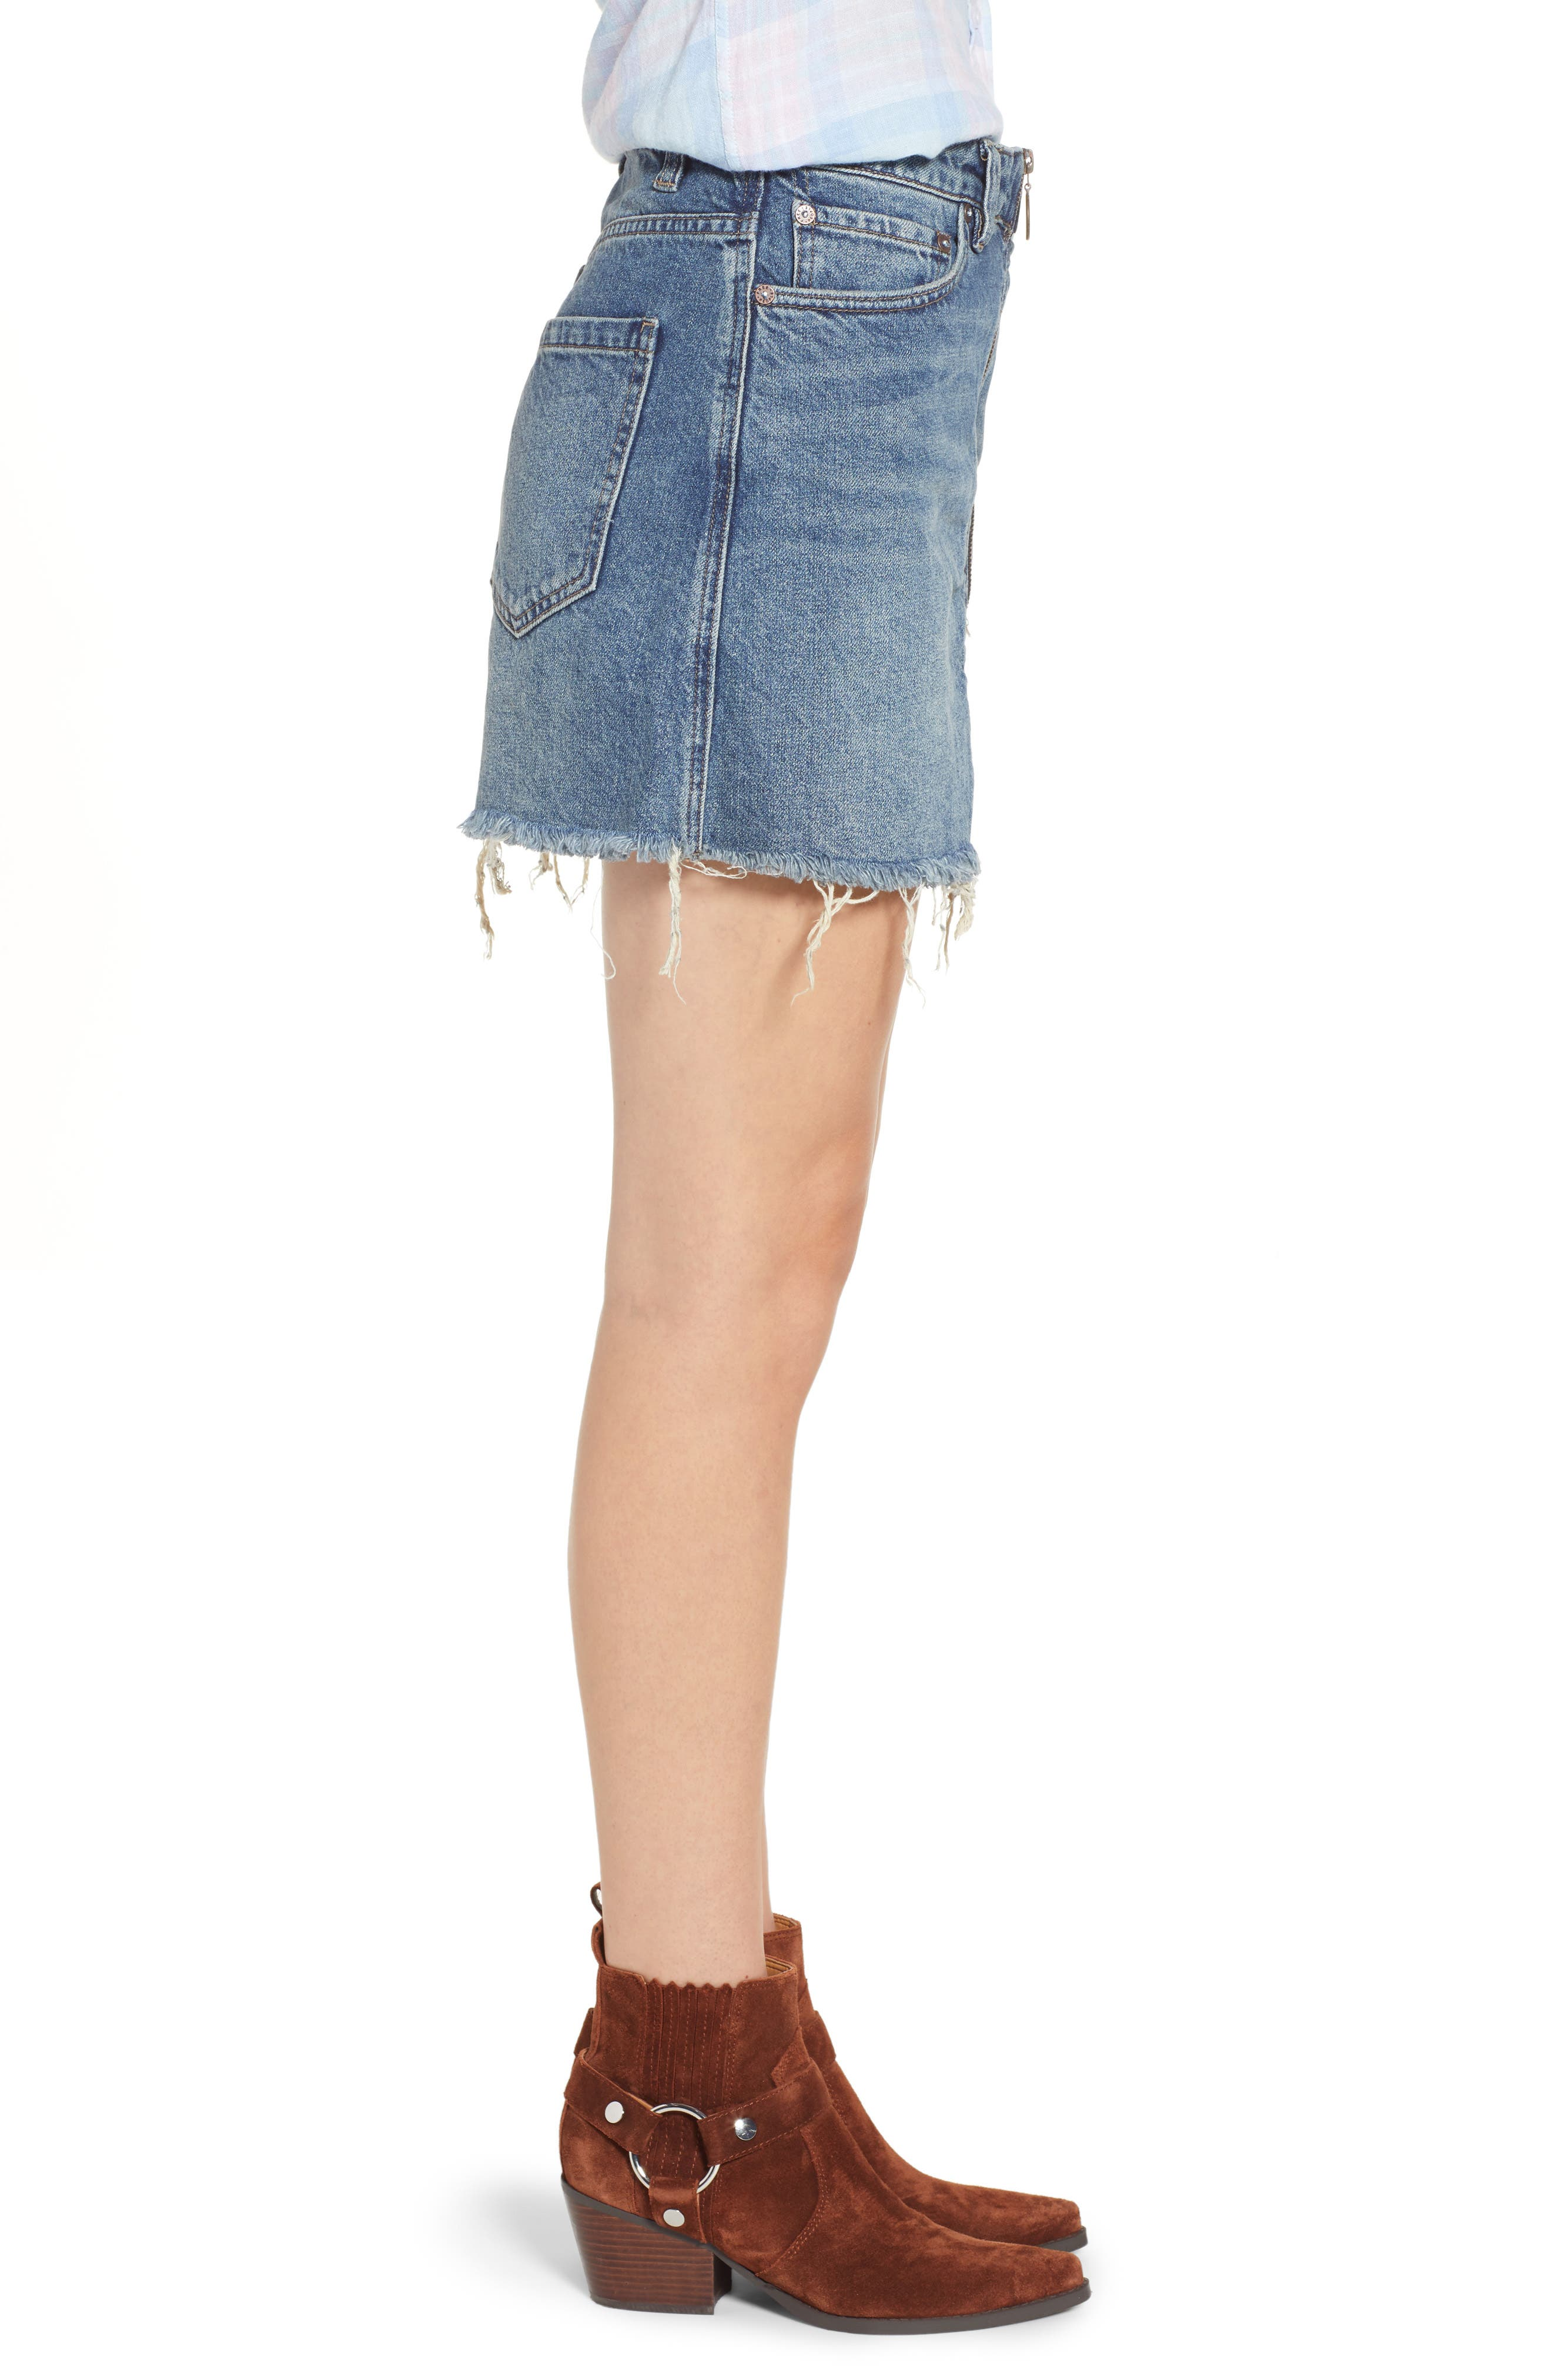 FREE PEOPLE, We the Free by Free People Zip It Up Denim Miniskirt, Alternate thumbnail 4, color, BLUE